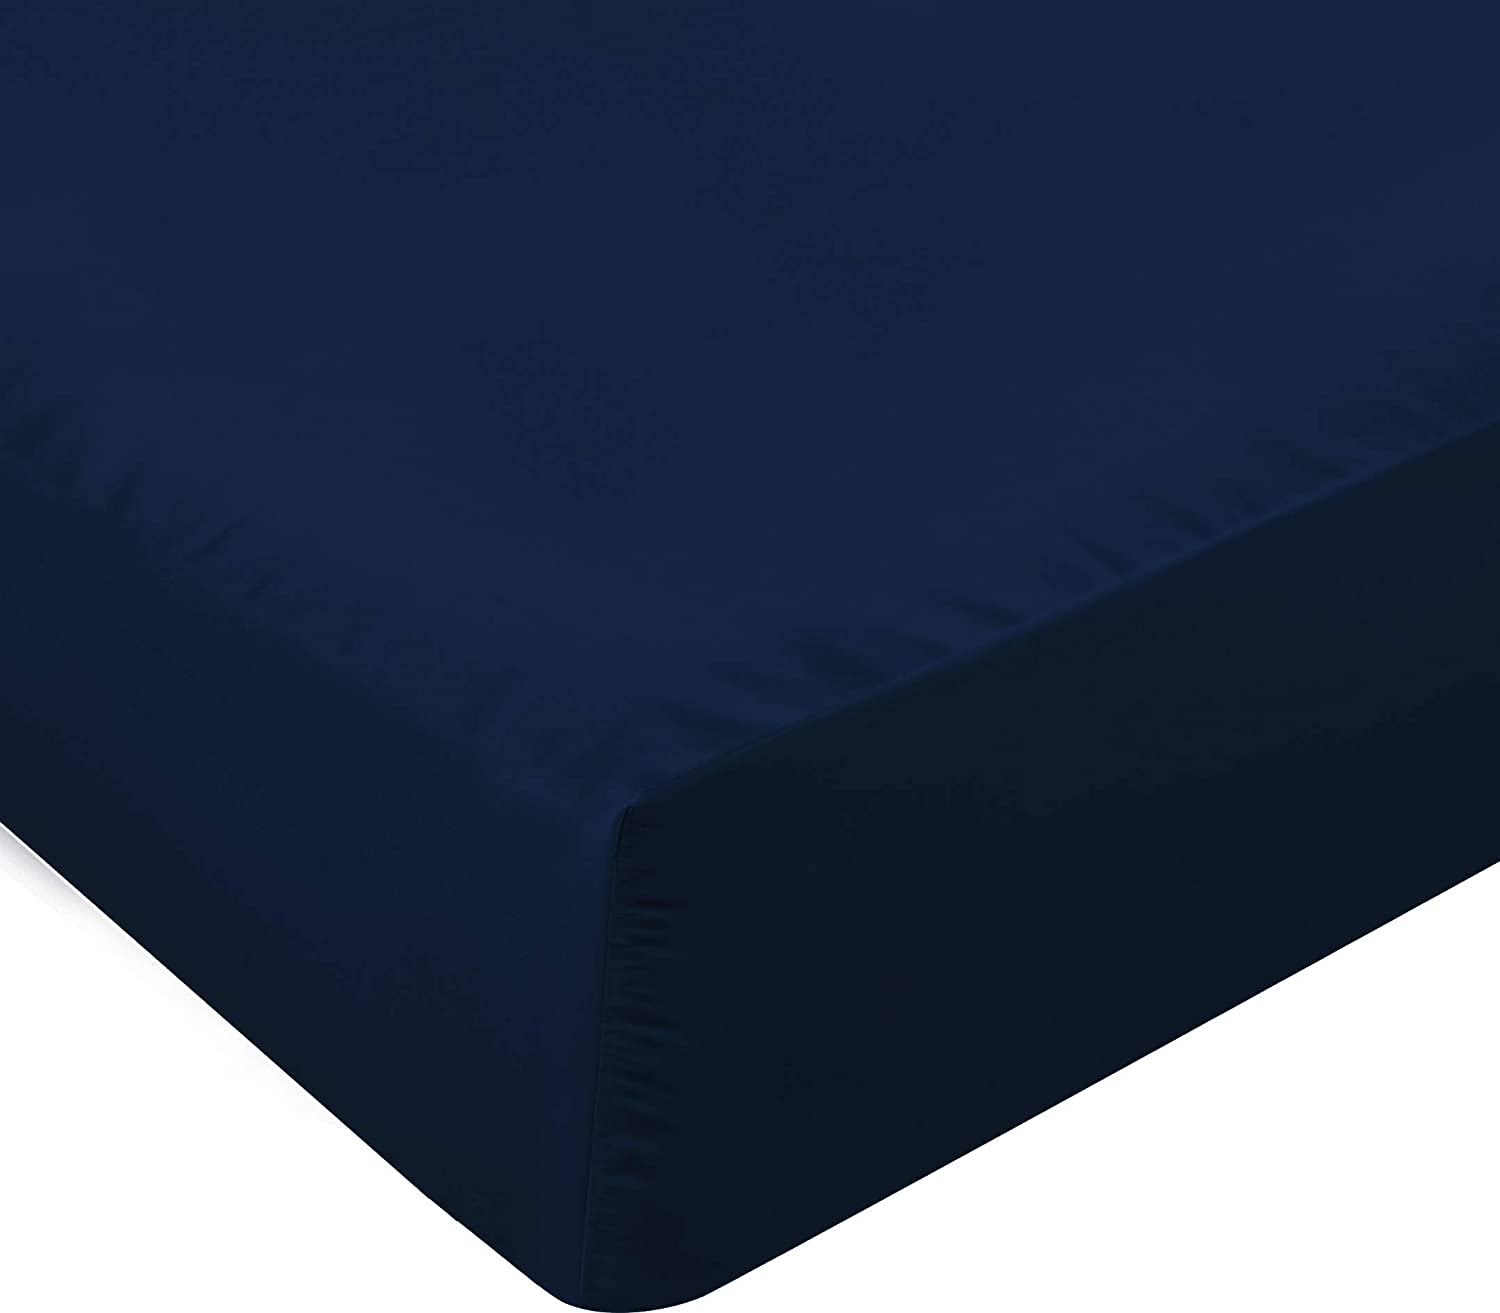 35 cm - Easy Care Soft Brushed Microfibre Fabric Wrinkle Double, White Deep Pocket 14 inch Shrinkage and Fade Resistant Utopia Bedding Fitted Sheet